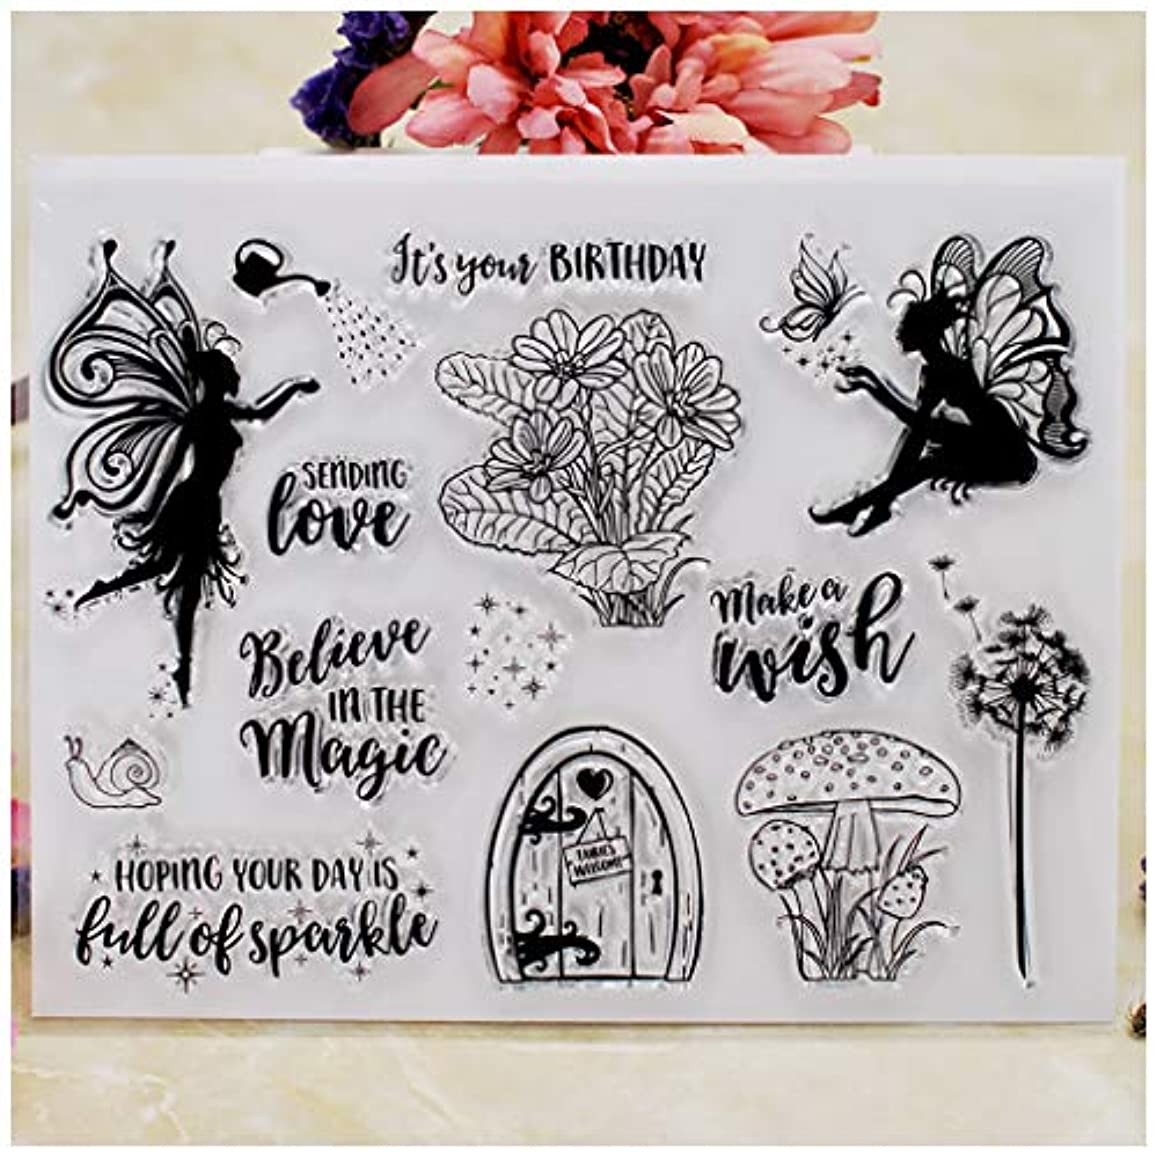 Kwan Crafts Make a Wish Sending Love Birthday Butterfly Clear Stamps for Card Making Decoration and DIY Scrapbooking